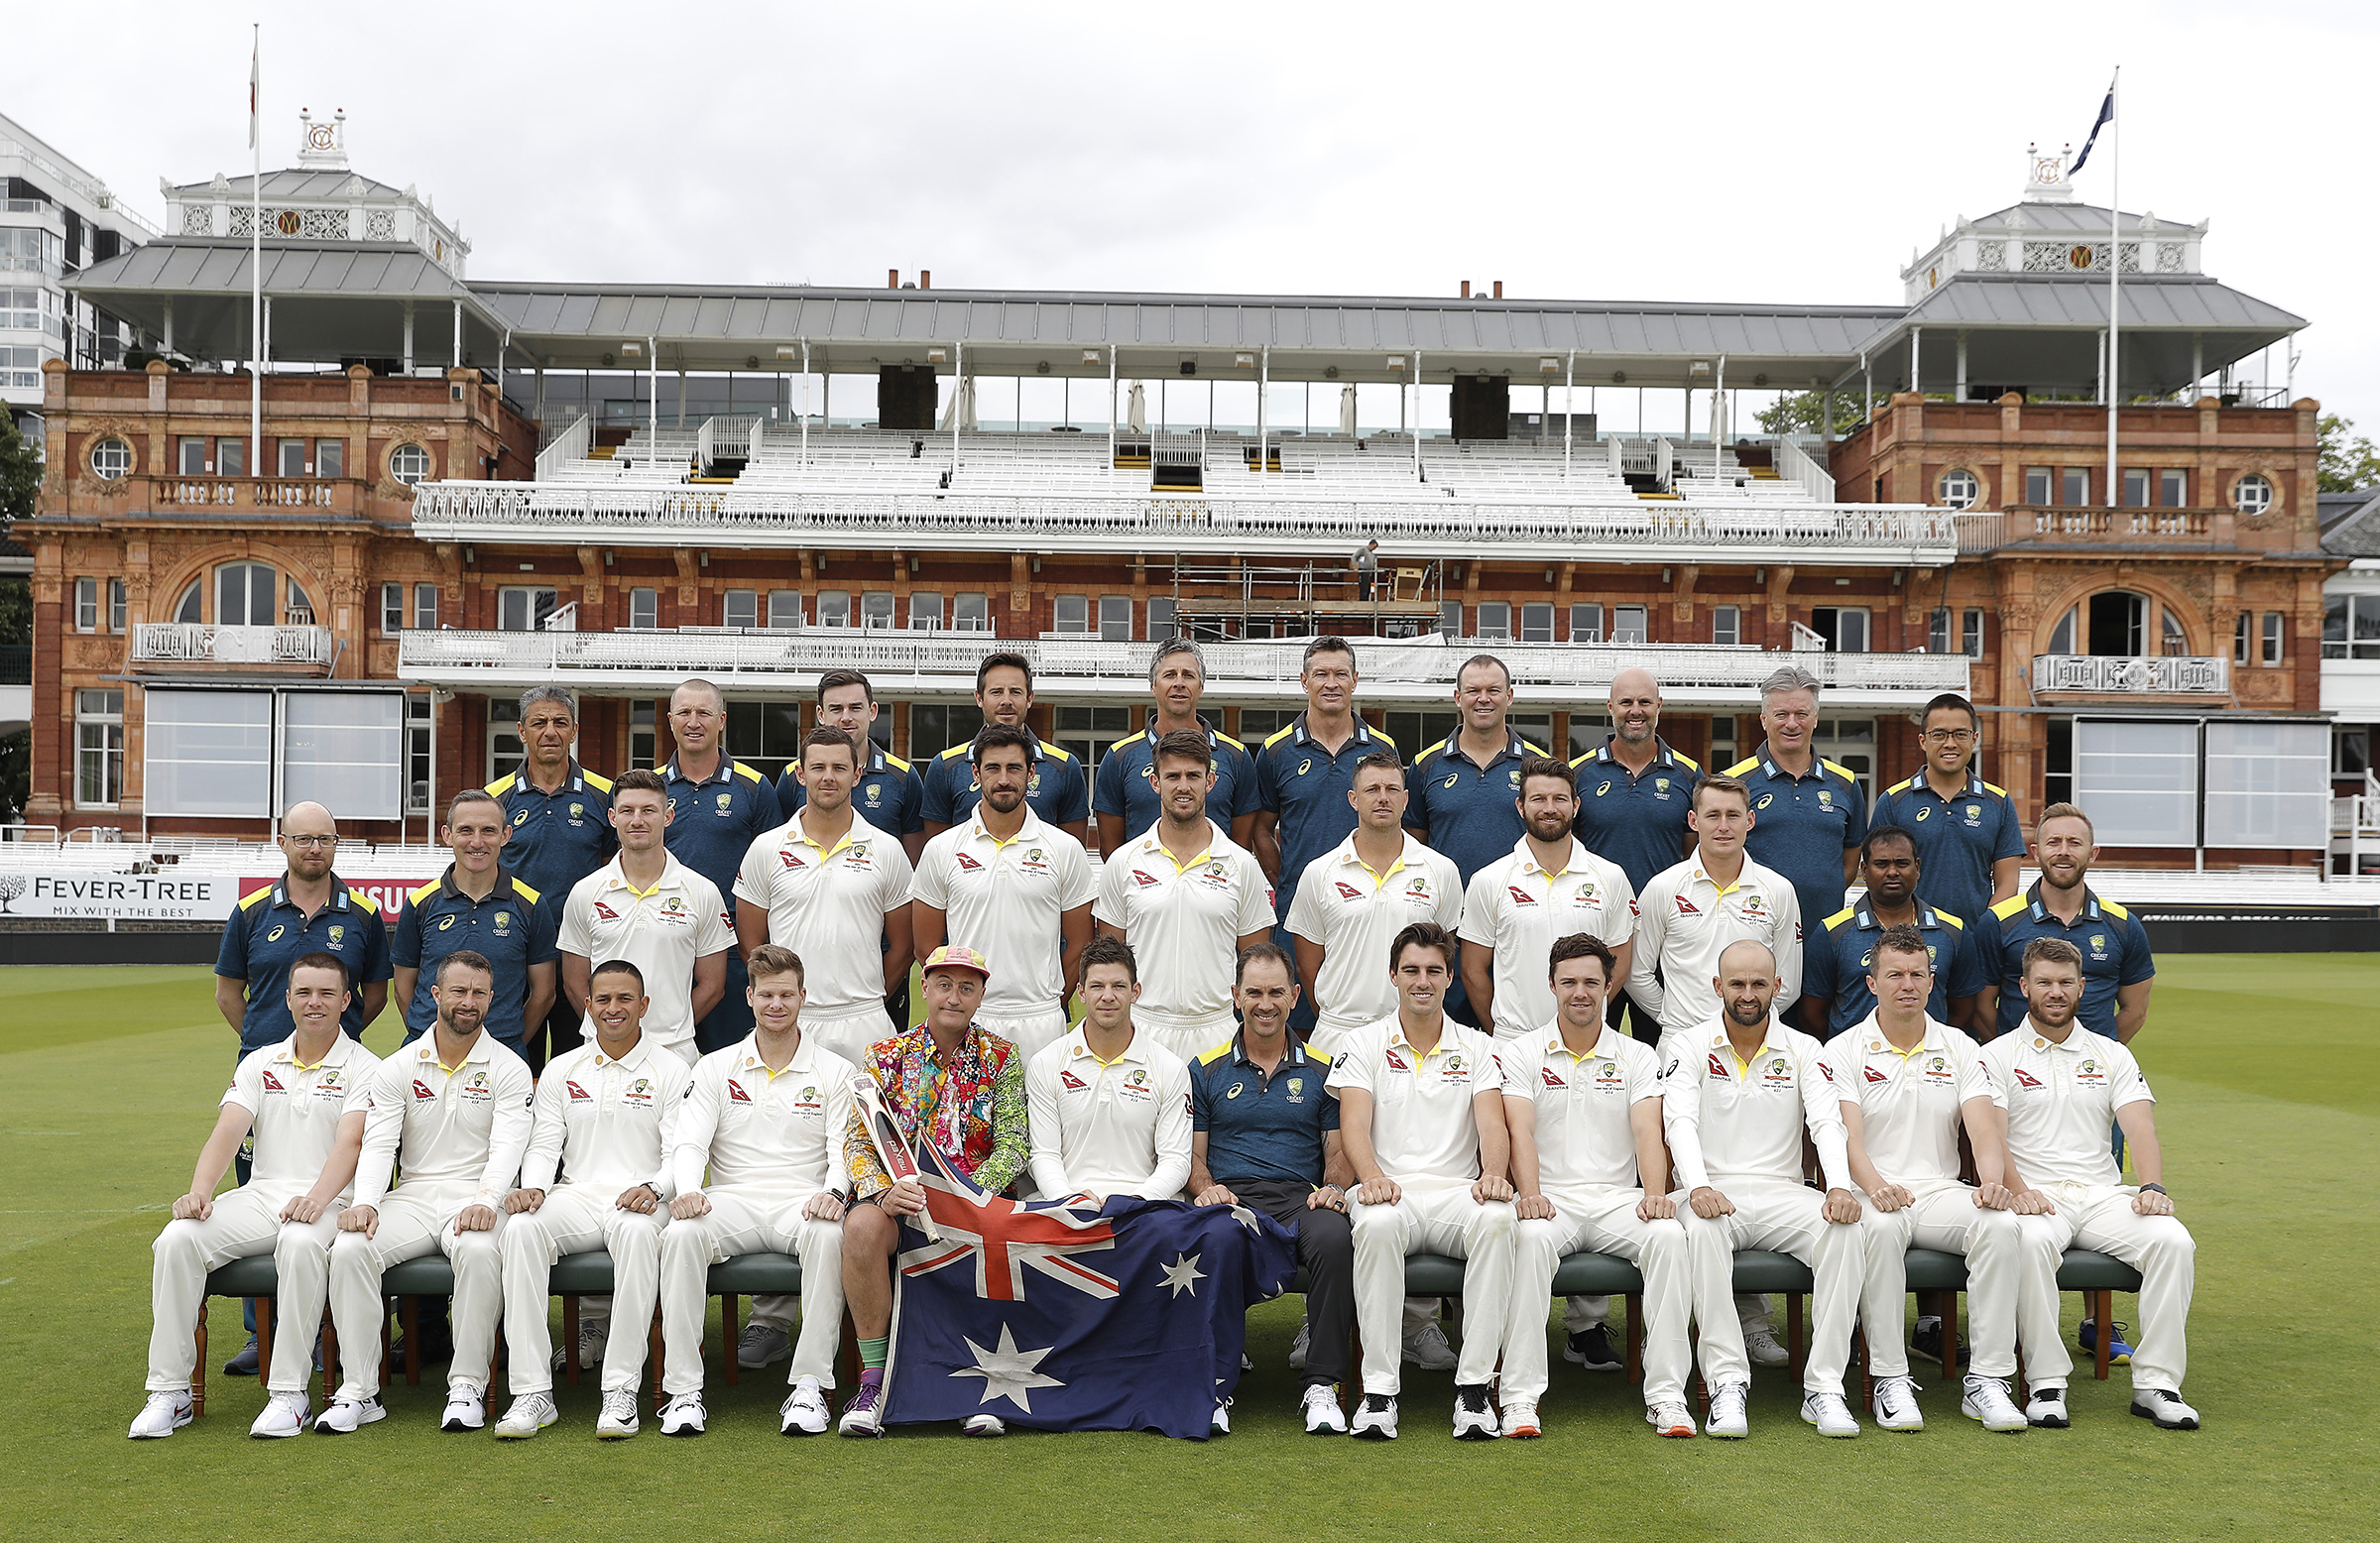 Sparrow sits in for Australia's Test squad team photo at Lord's // Getty